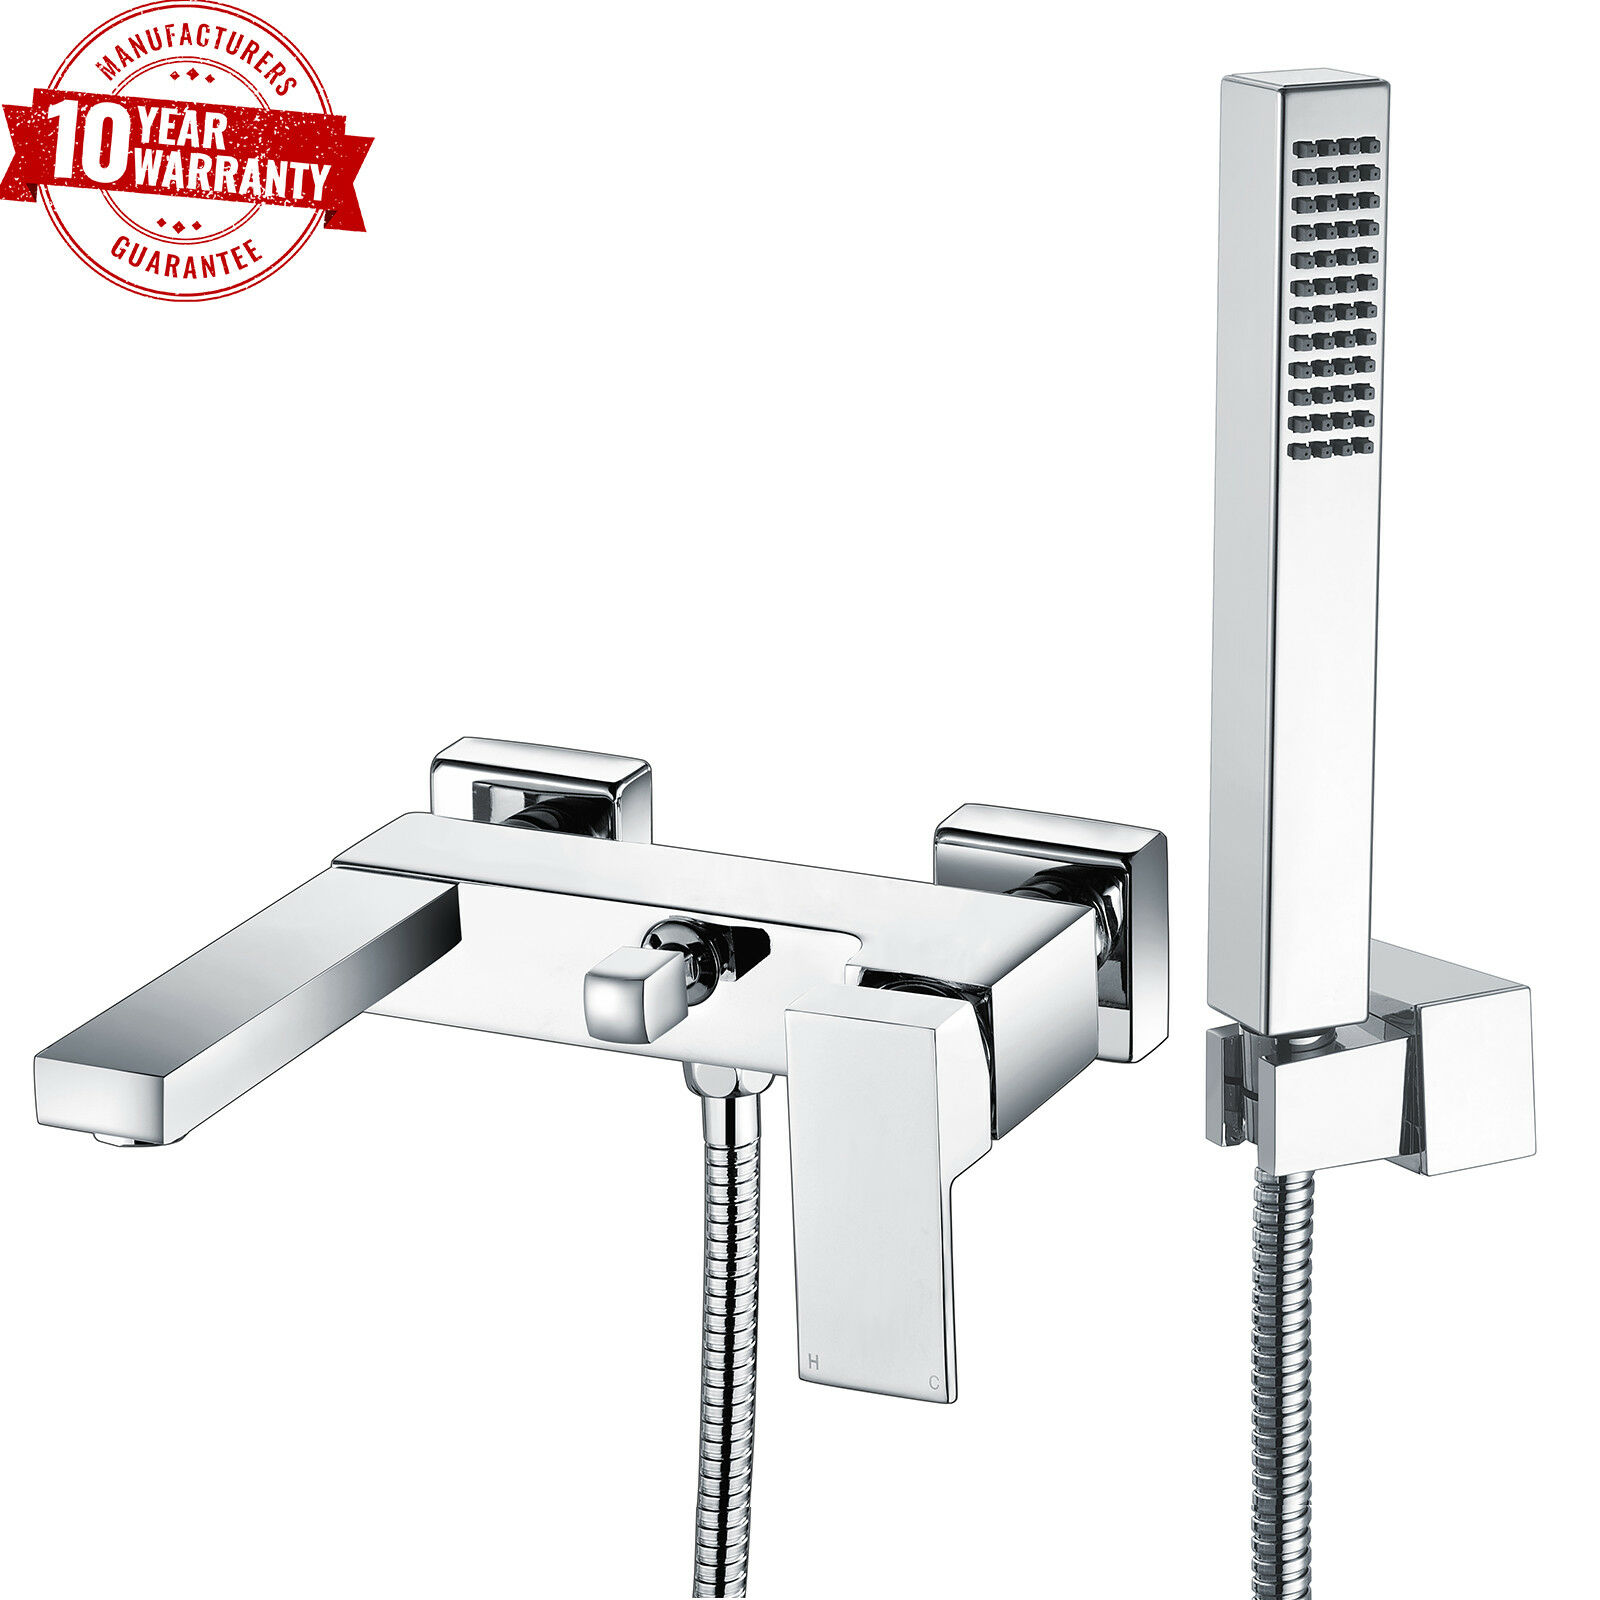 Wall Mounted Bathroom Chrome Bath Thermostatic Shower Faucet Tap ABS hand held